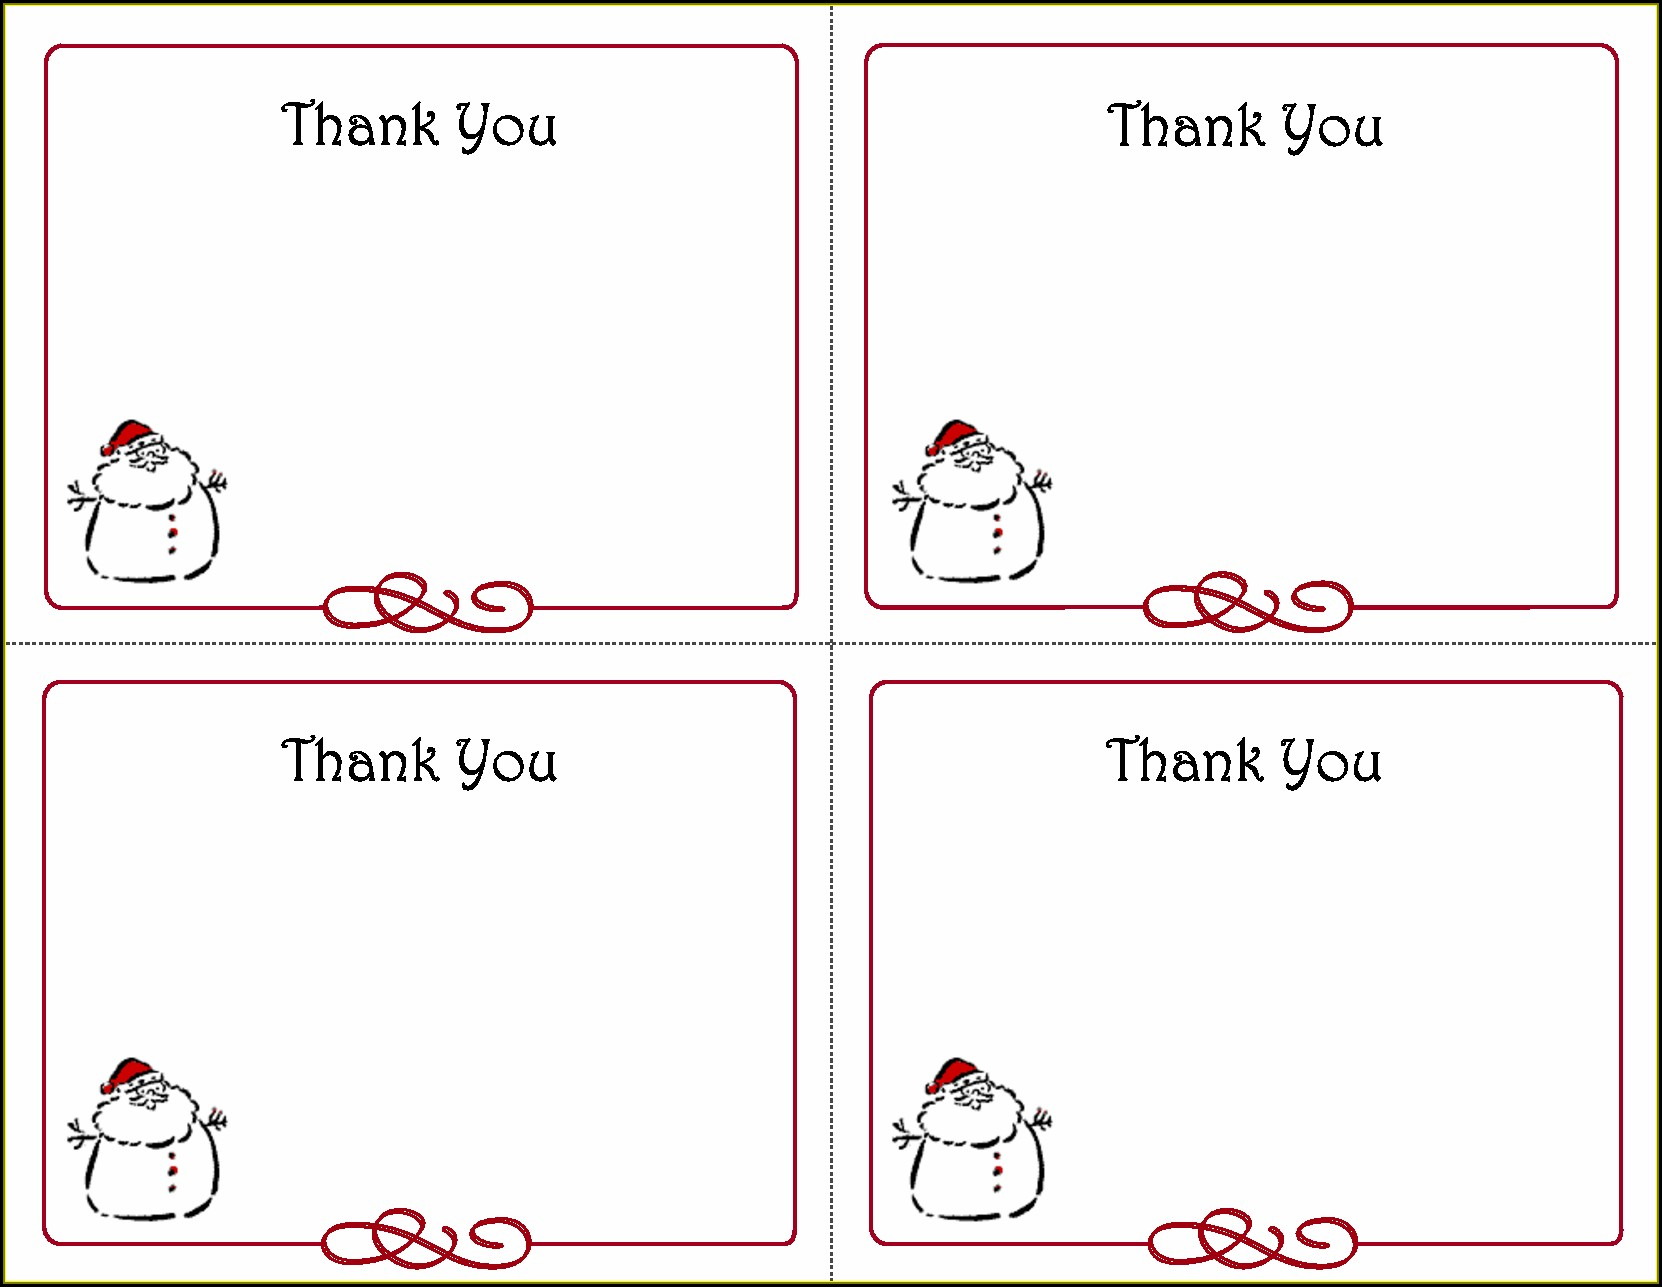 Thank You Postcard Template Word